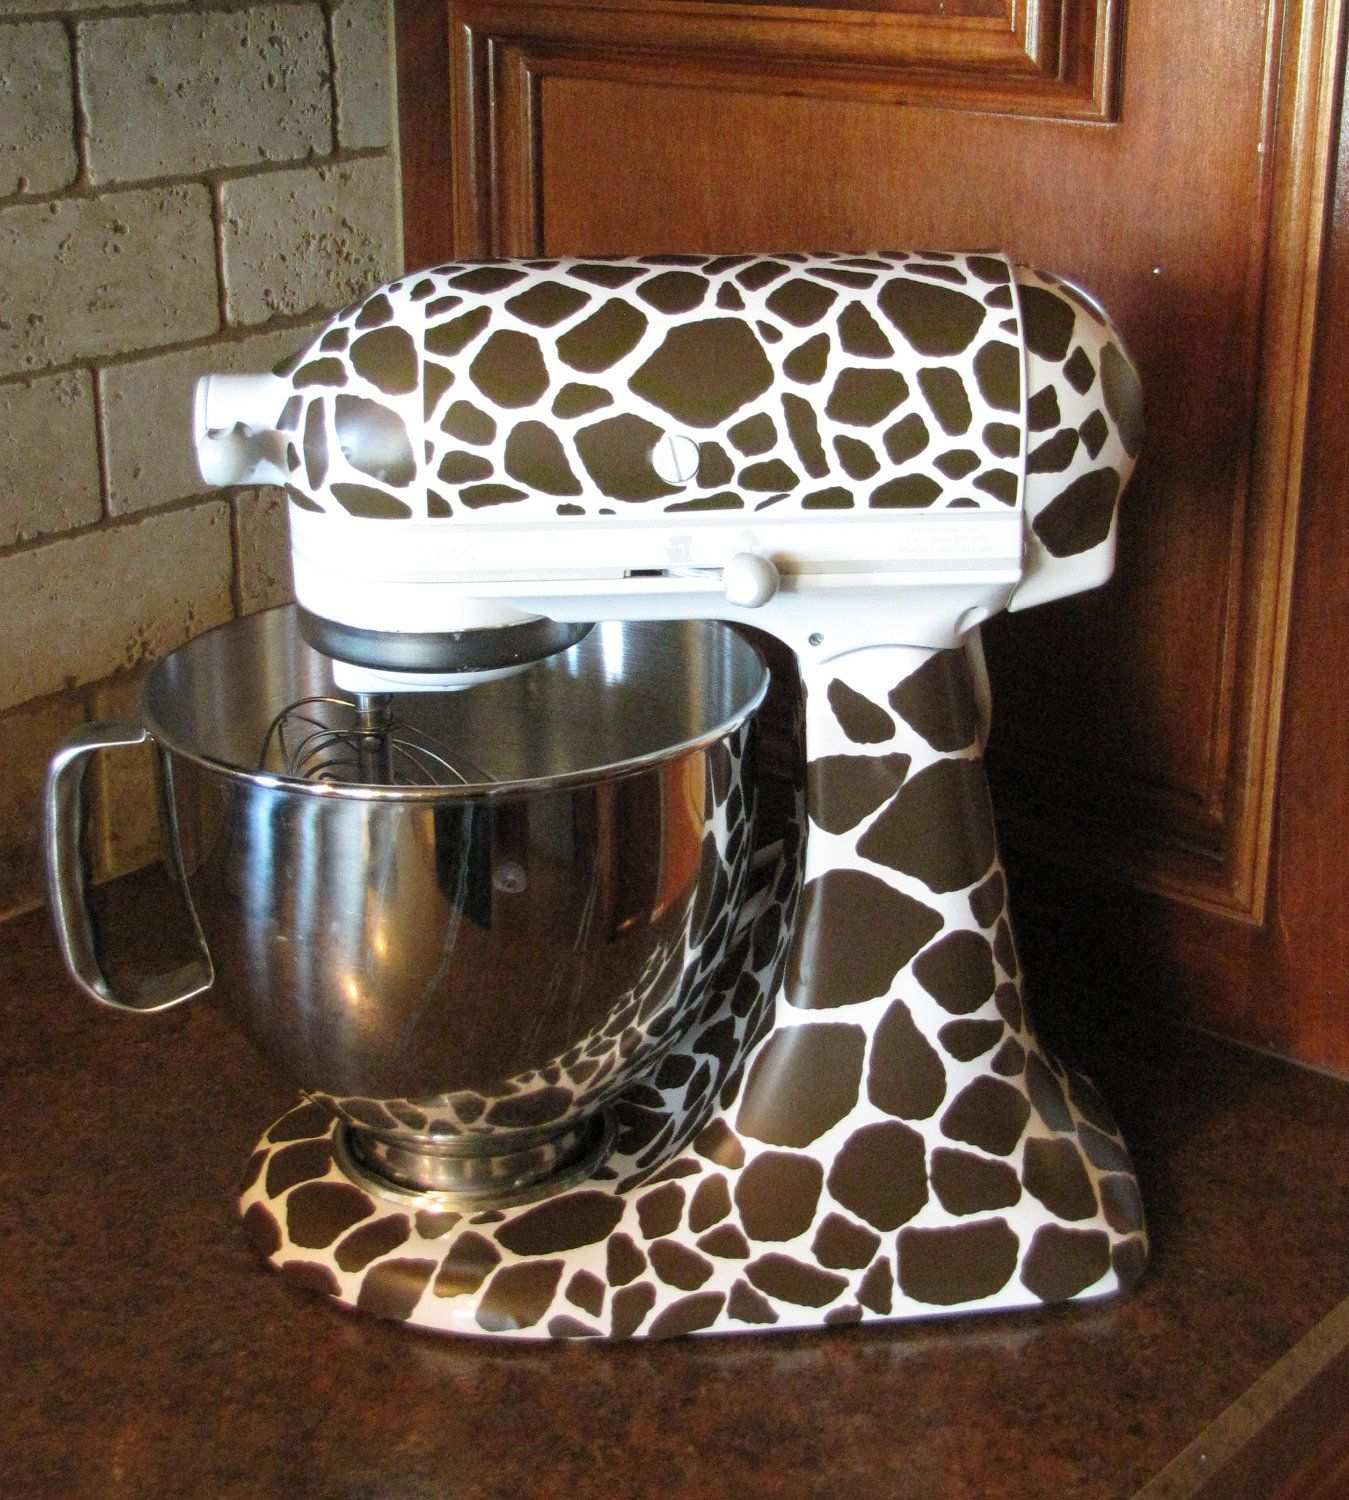 Kitchen Art Mixer: Kitchen Mixer Vinyl Decals-Giraffe Spots. $22.50, Via Etsy